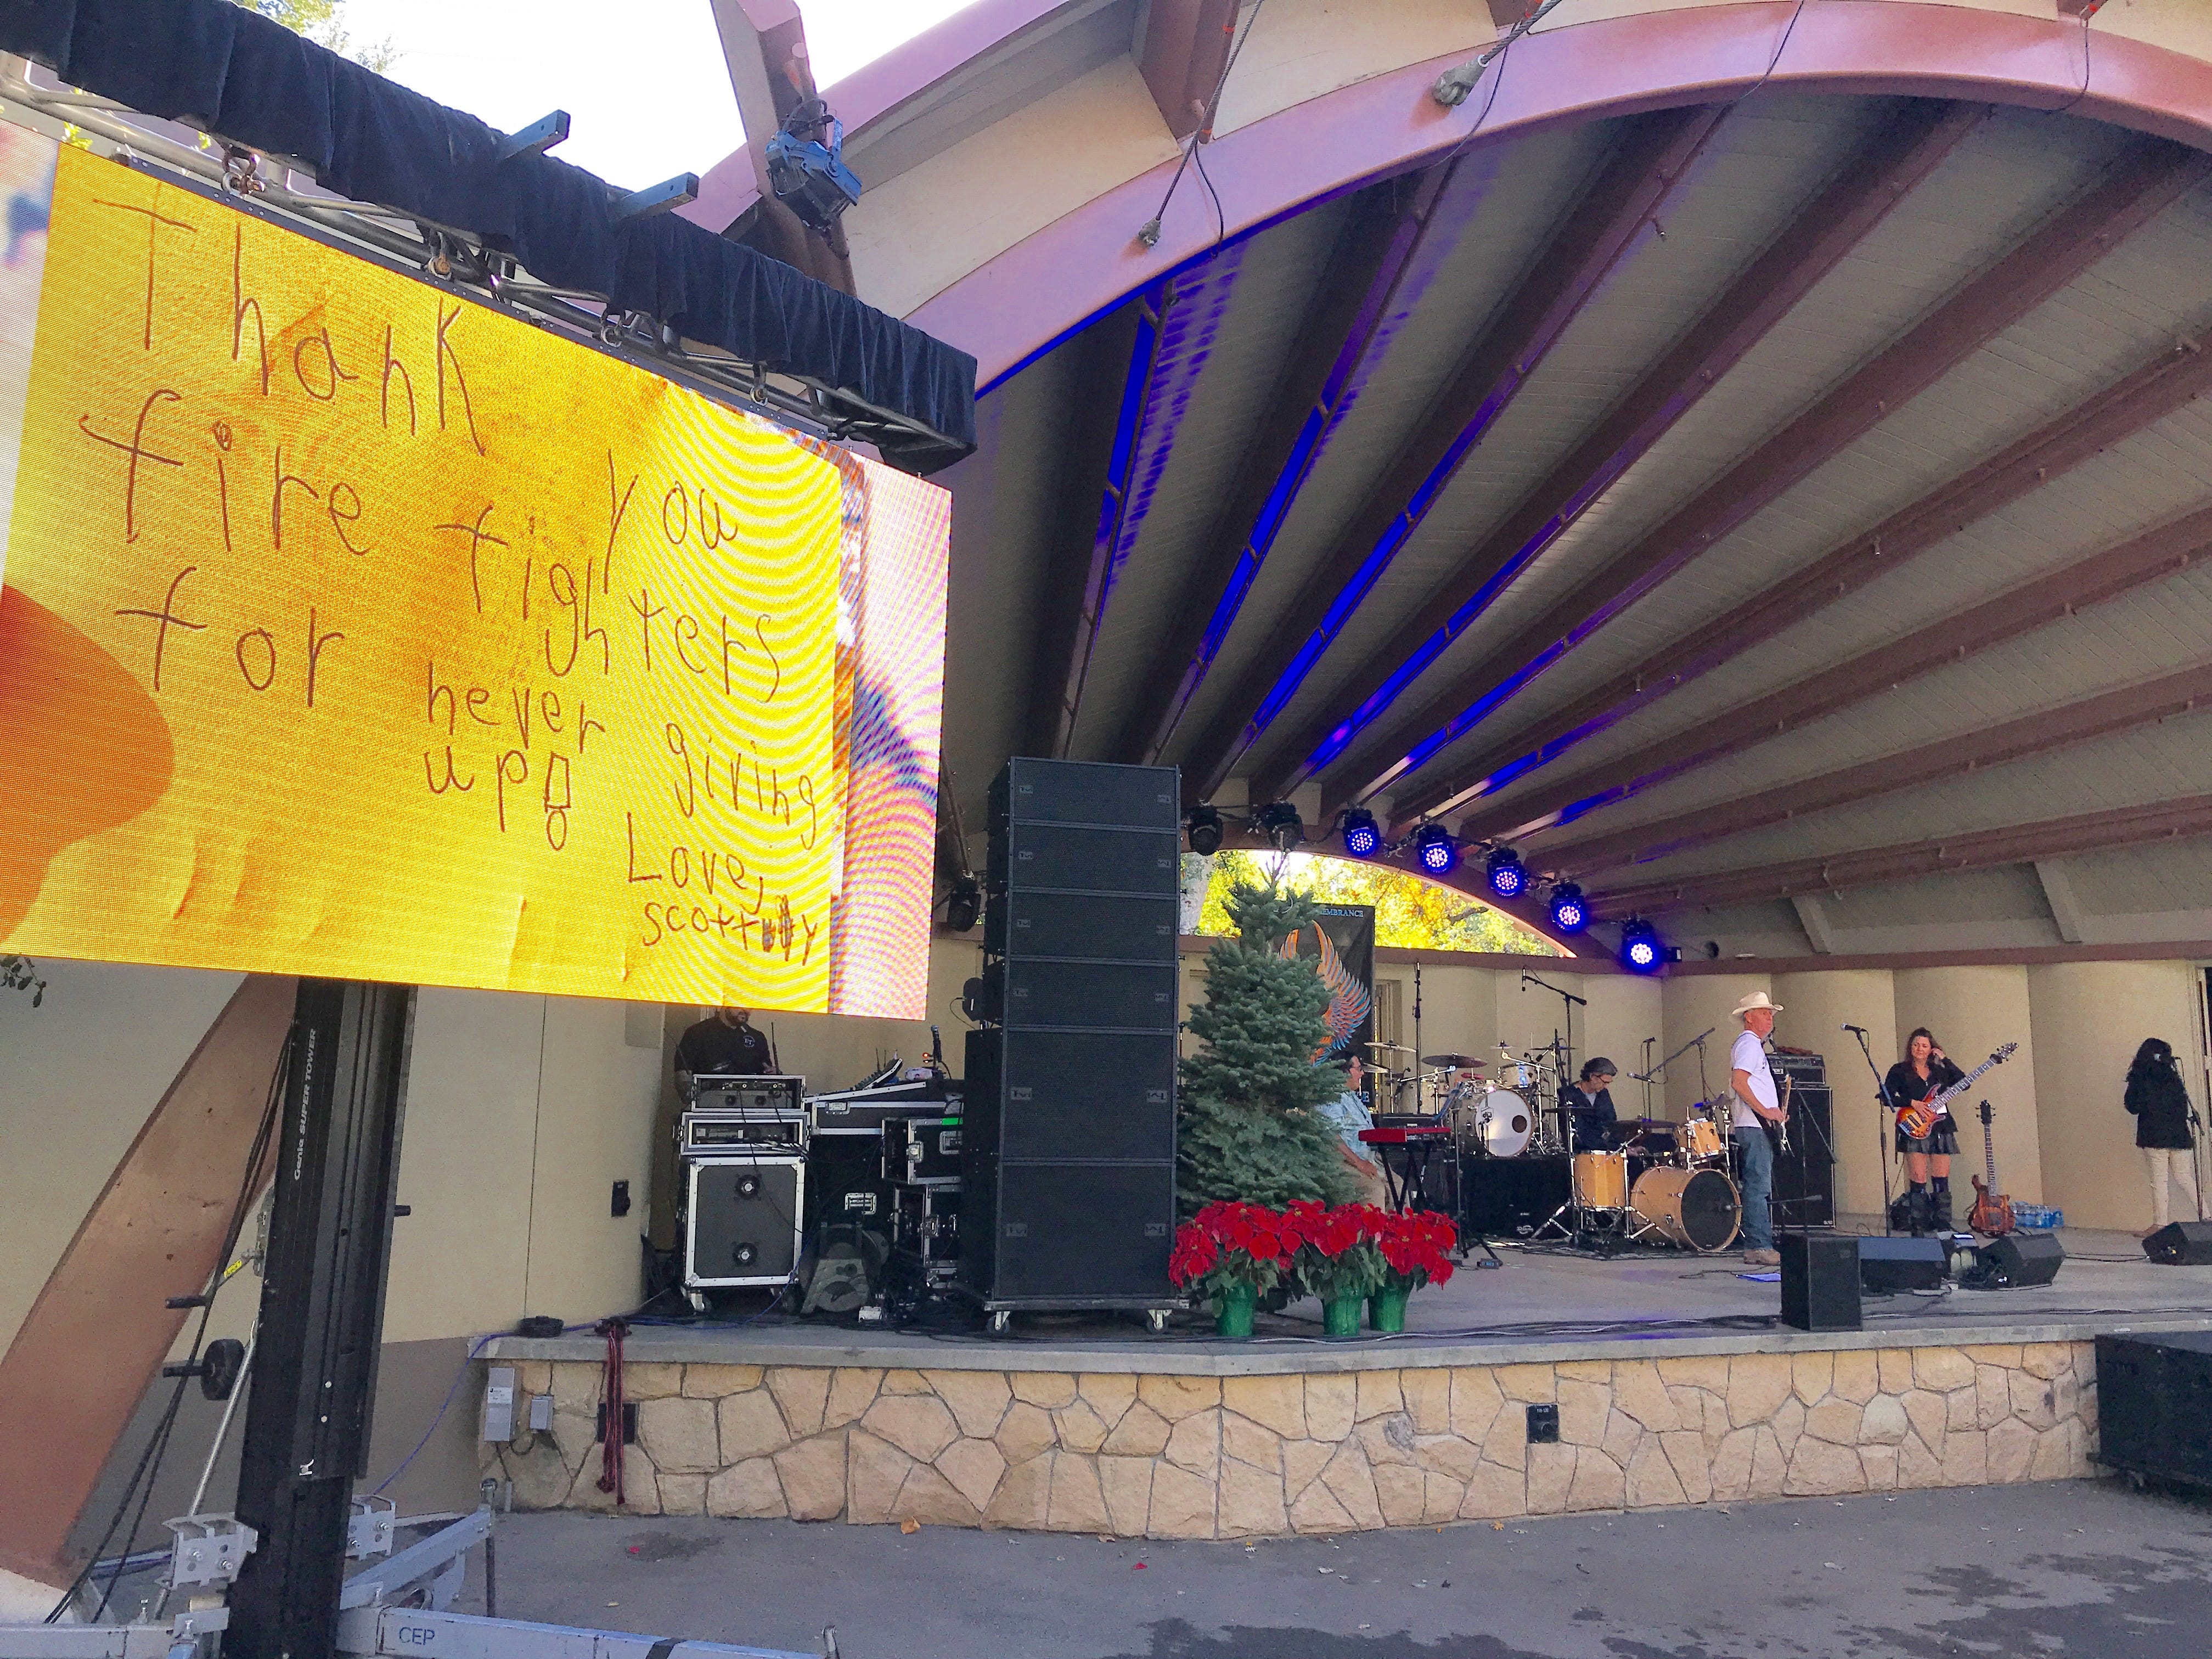 A thank you note to firefighters is displayed as part of a slideshow about the Thomas Fire, while the band Charles Law warms up for a concert at Libbey Bowl on Saturday.